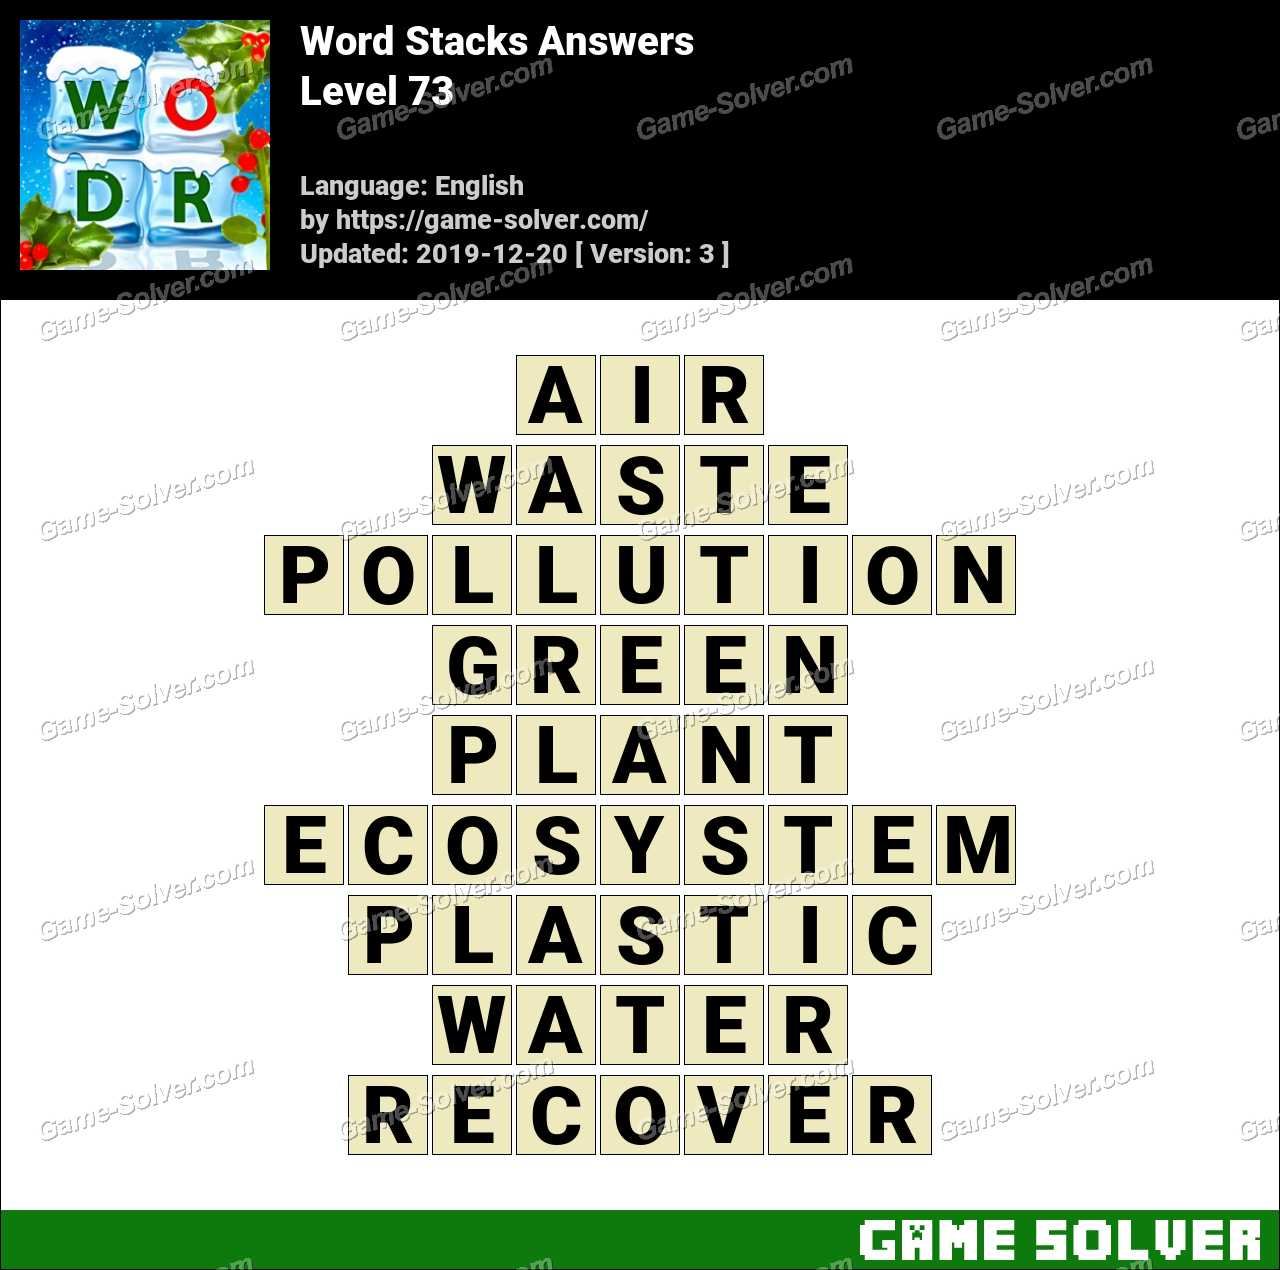 Word Stacks Level 73 Answers